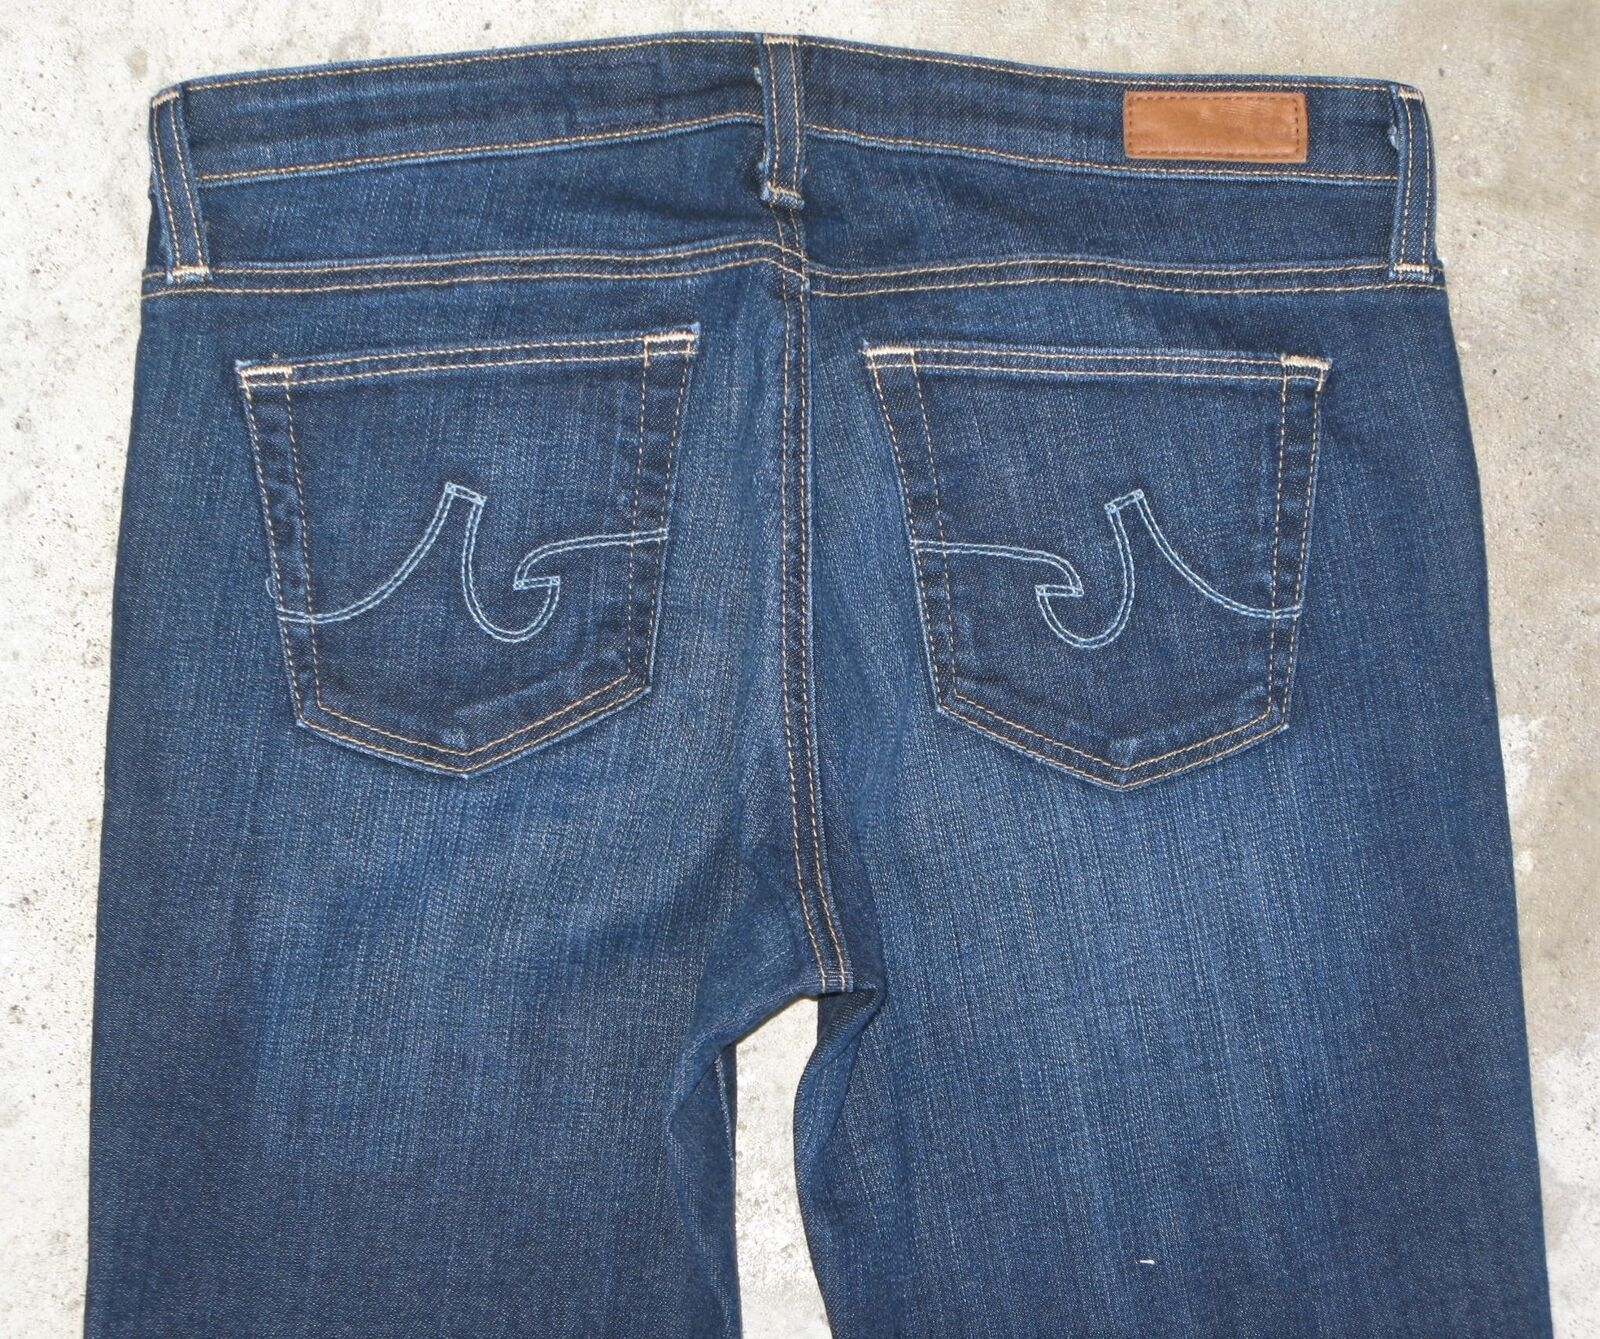 AG ADRIANO goldSCHMIED Angelina Jeans Sz 29 Petite Bootcut Dark Distressed